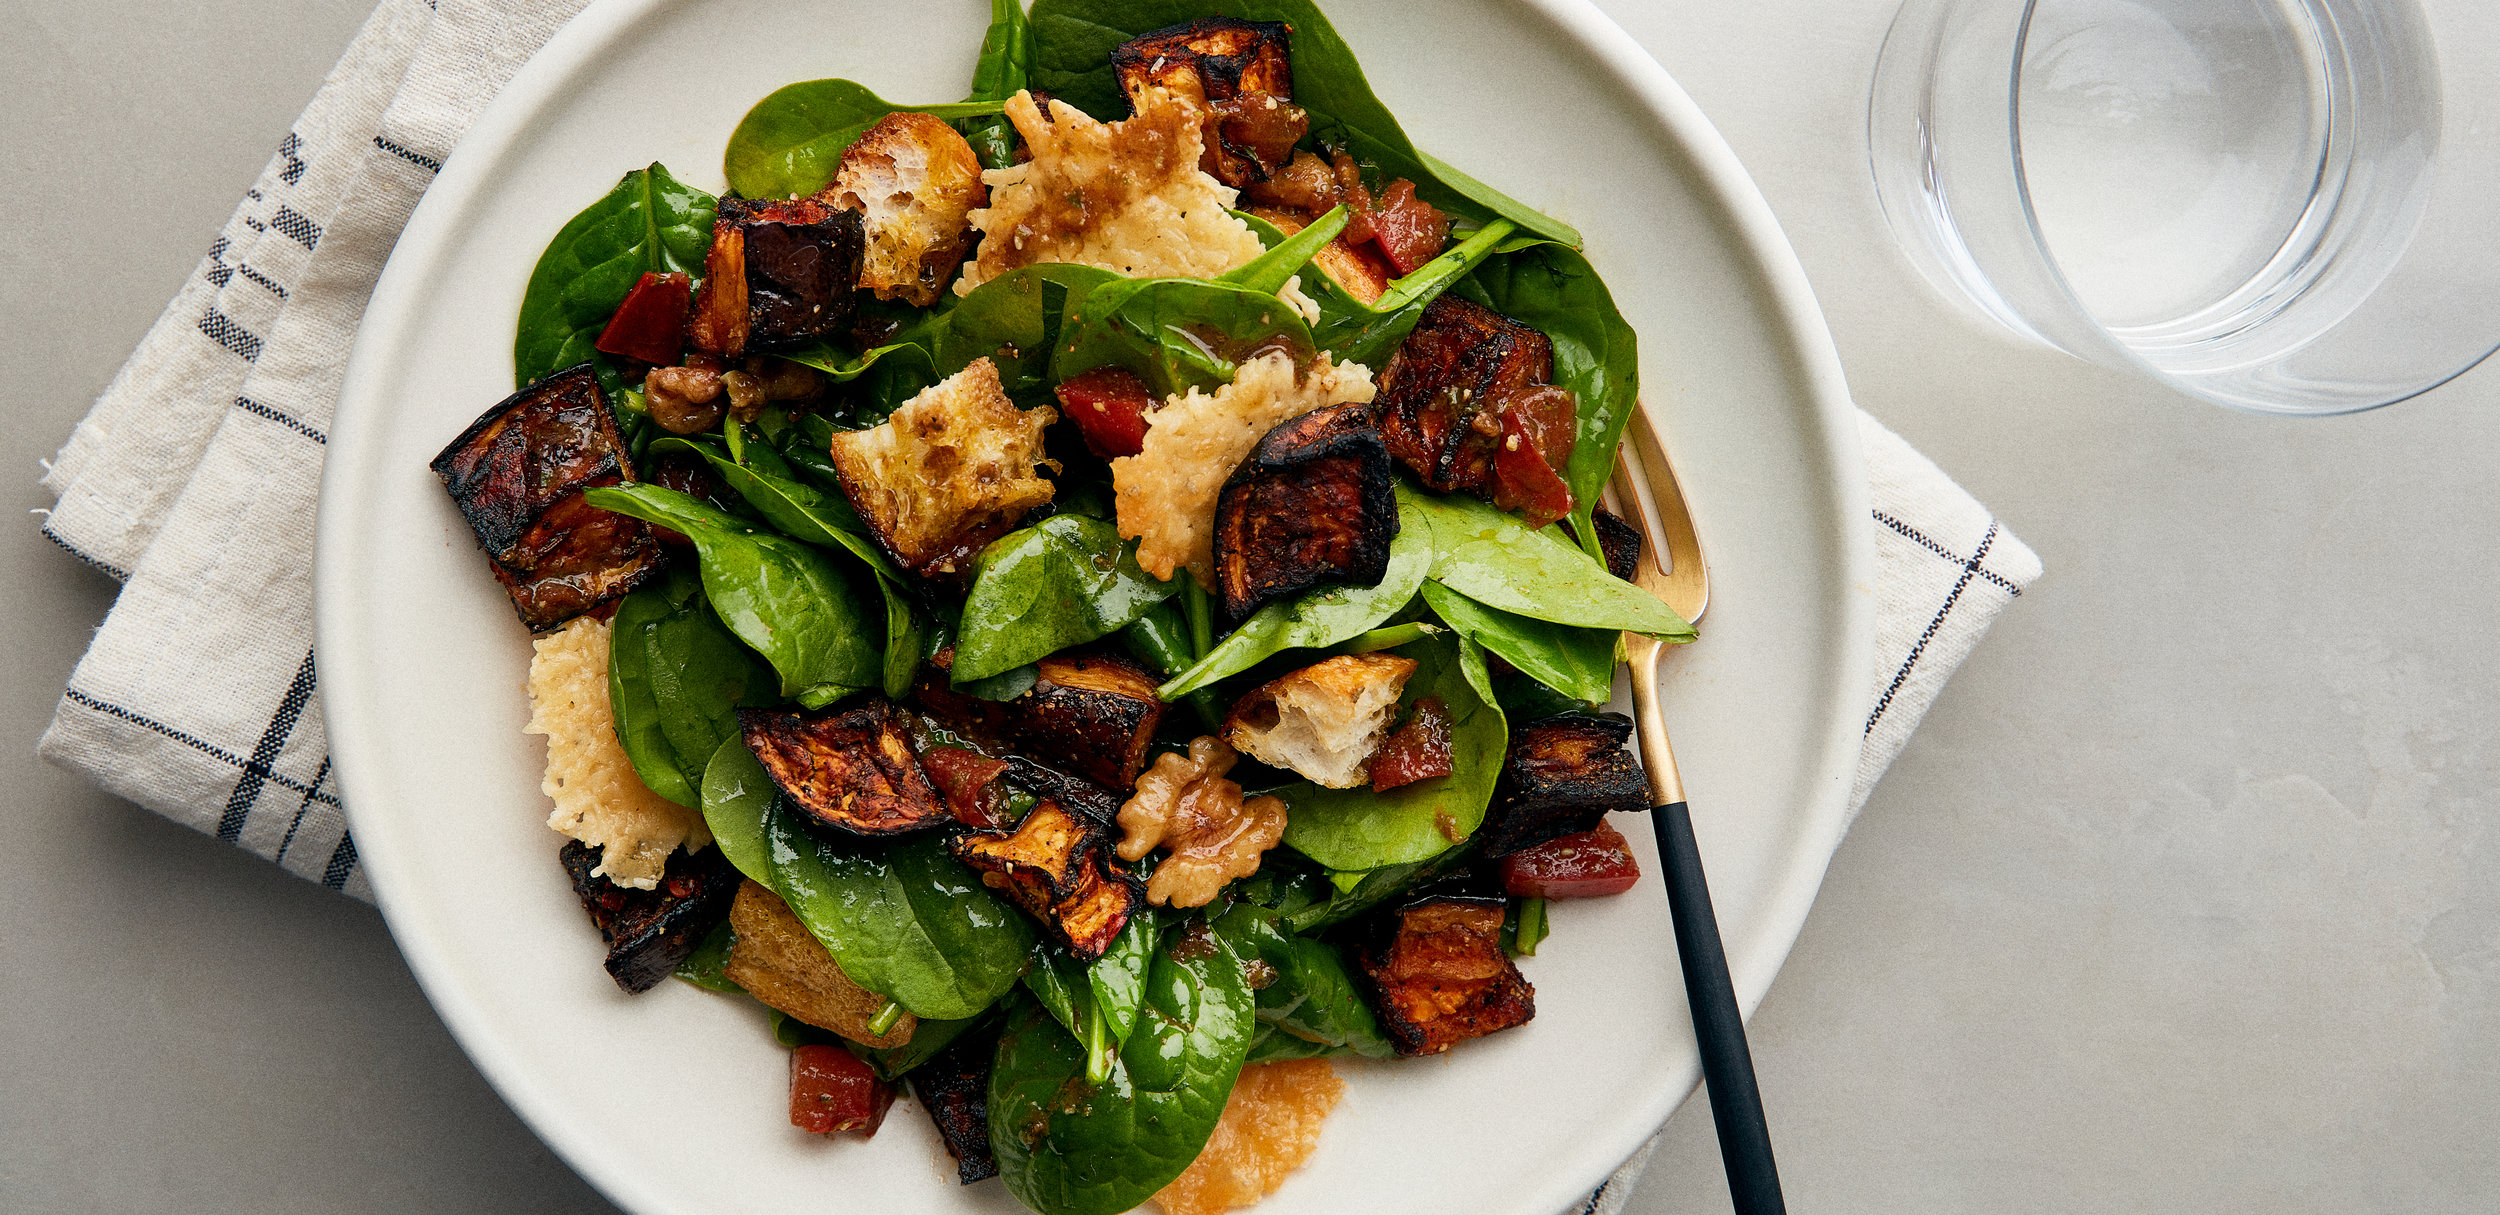 Roasted Eggplant and Tomato Salad With Frico, Herbs, and Rustic Croutons — 0032 — HERO.jpg